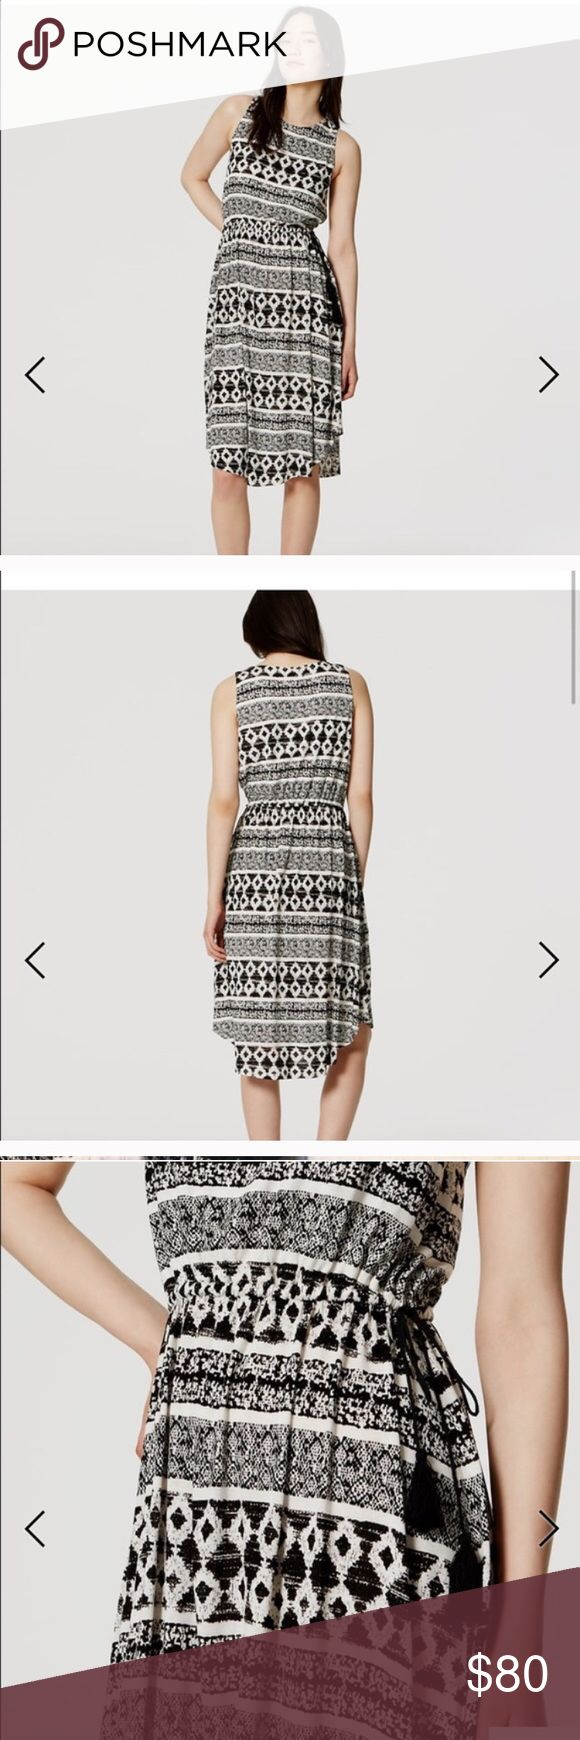 NWT Loft midi print tasseled dress Black and white soft and flowy midi length dress from Ann Taylor Loft. Tribal boho graphic striped print. Partially lined. Elastic waist with drawstring tassels. Sleeveless. Scoopneck. Curved hem. Size small petite. Rayon. New with tags. LOFT Dresses Midi